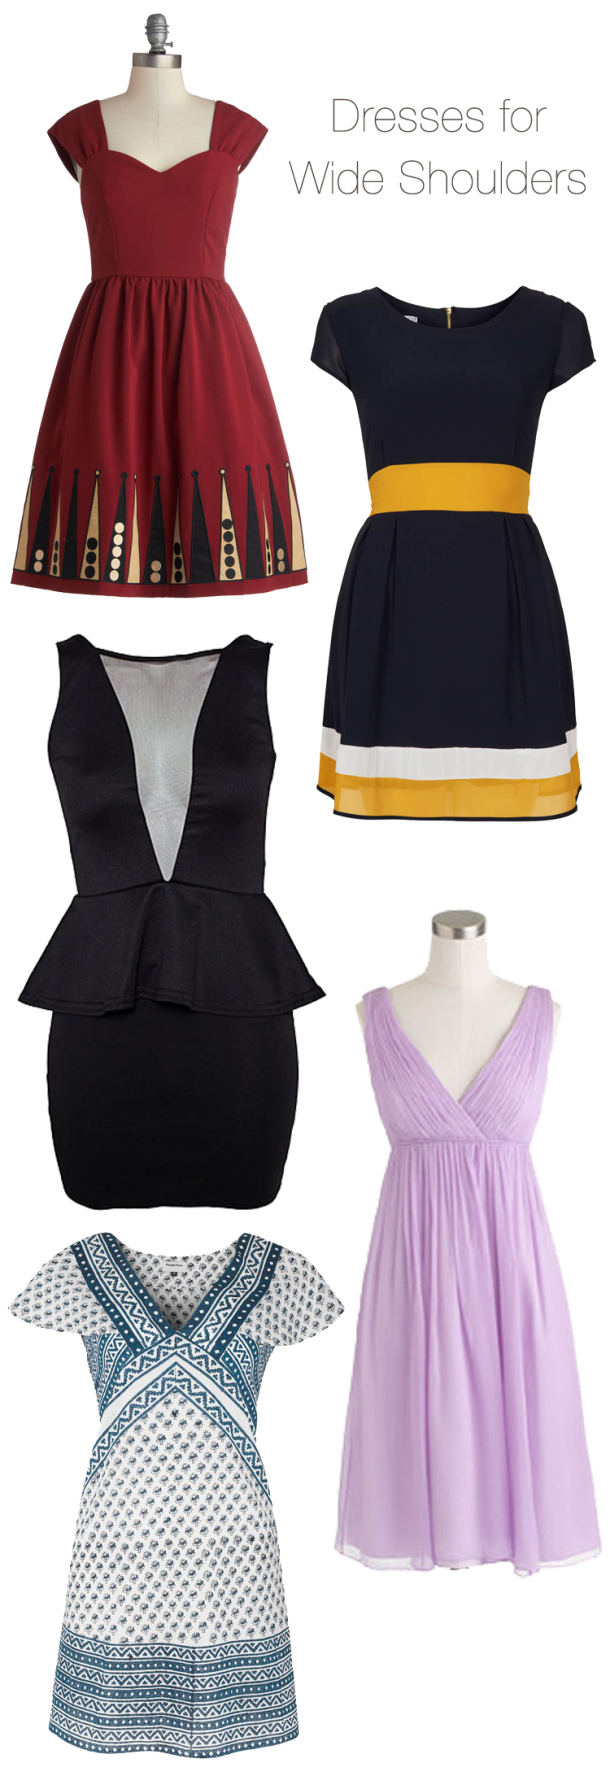 How to: Dress for Wide Shoulders  Dresses for broad shoulders